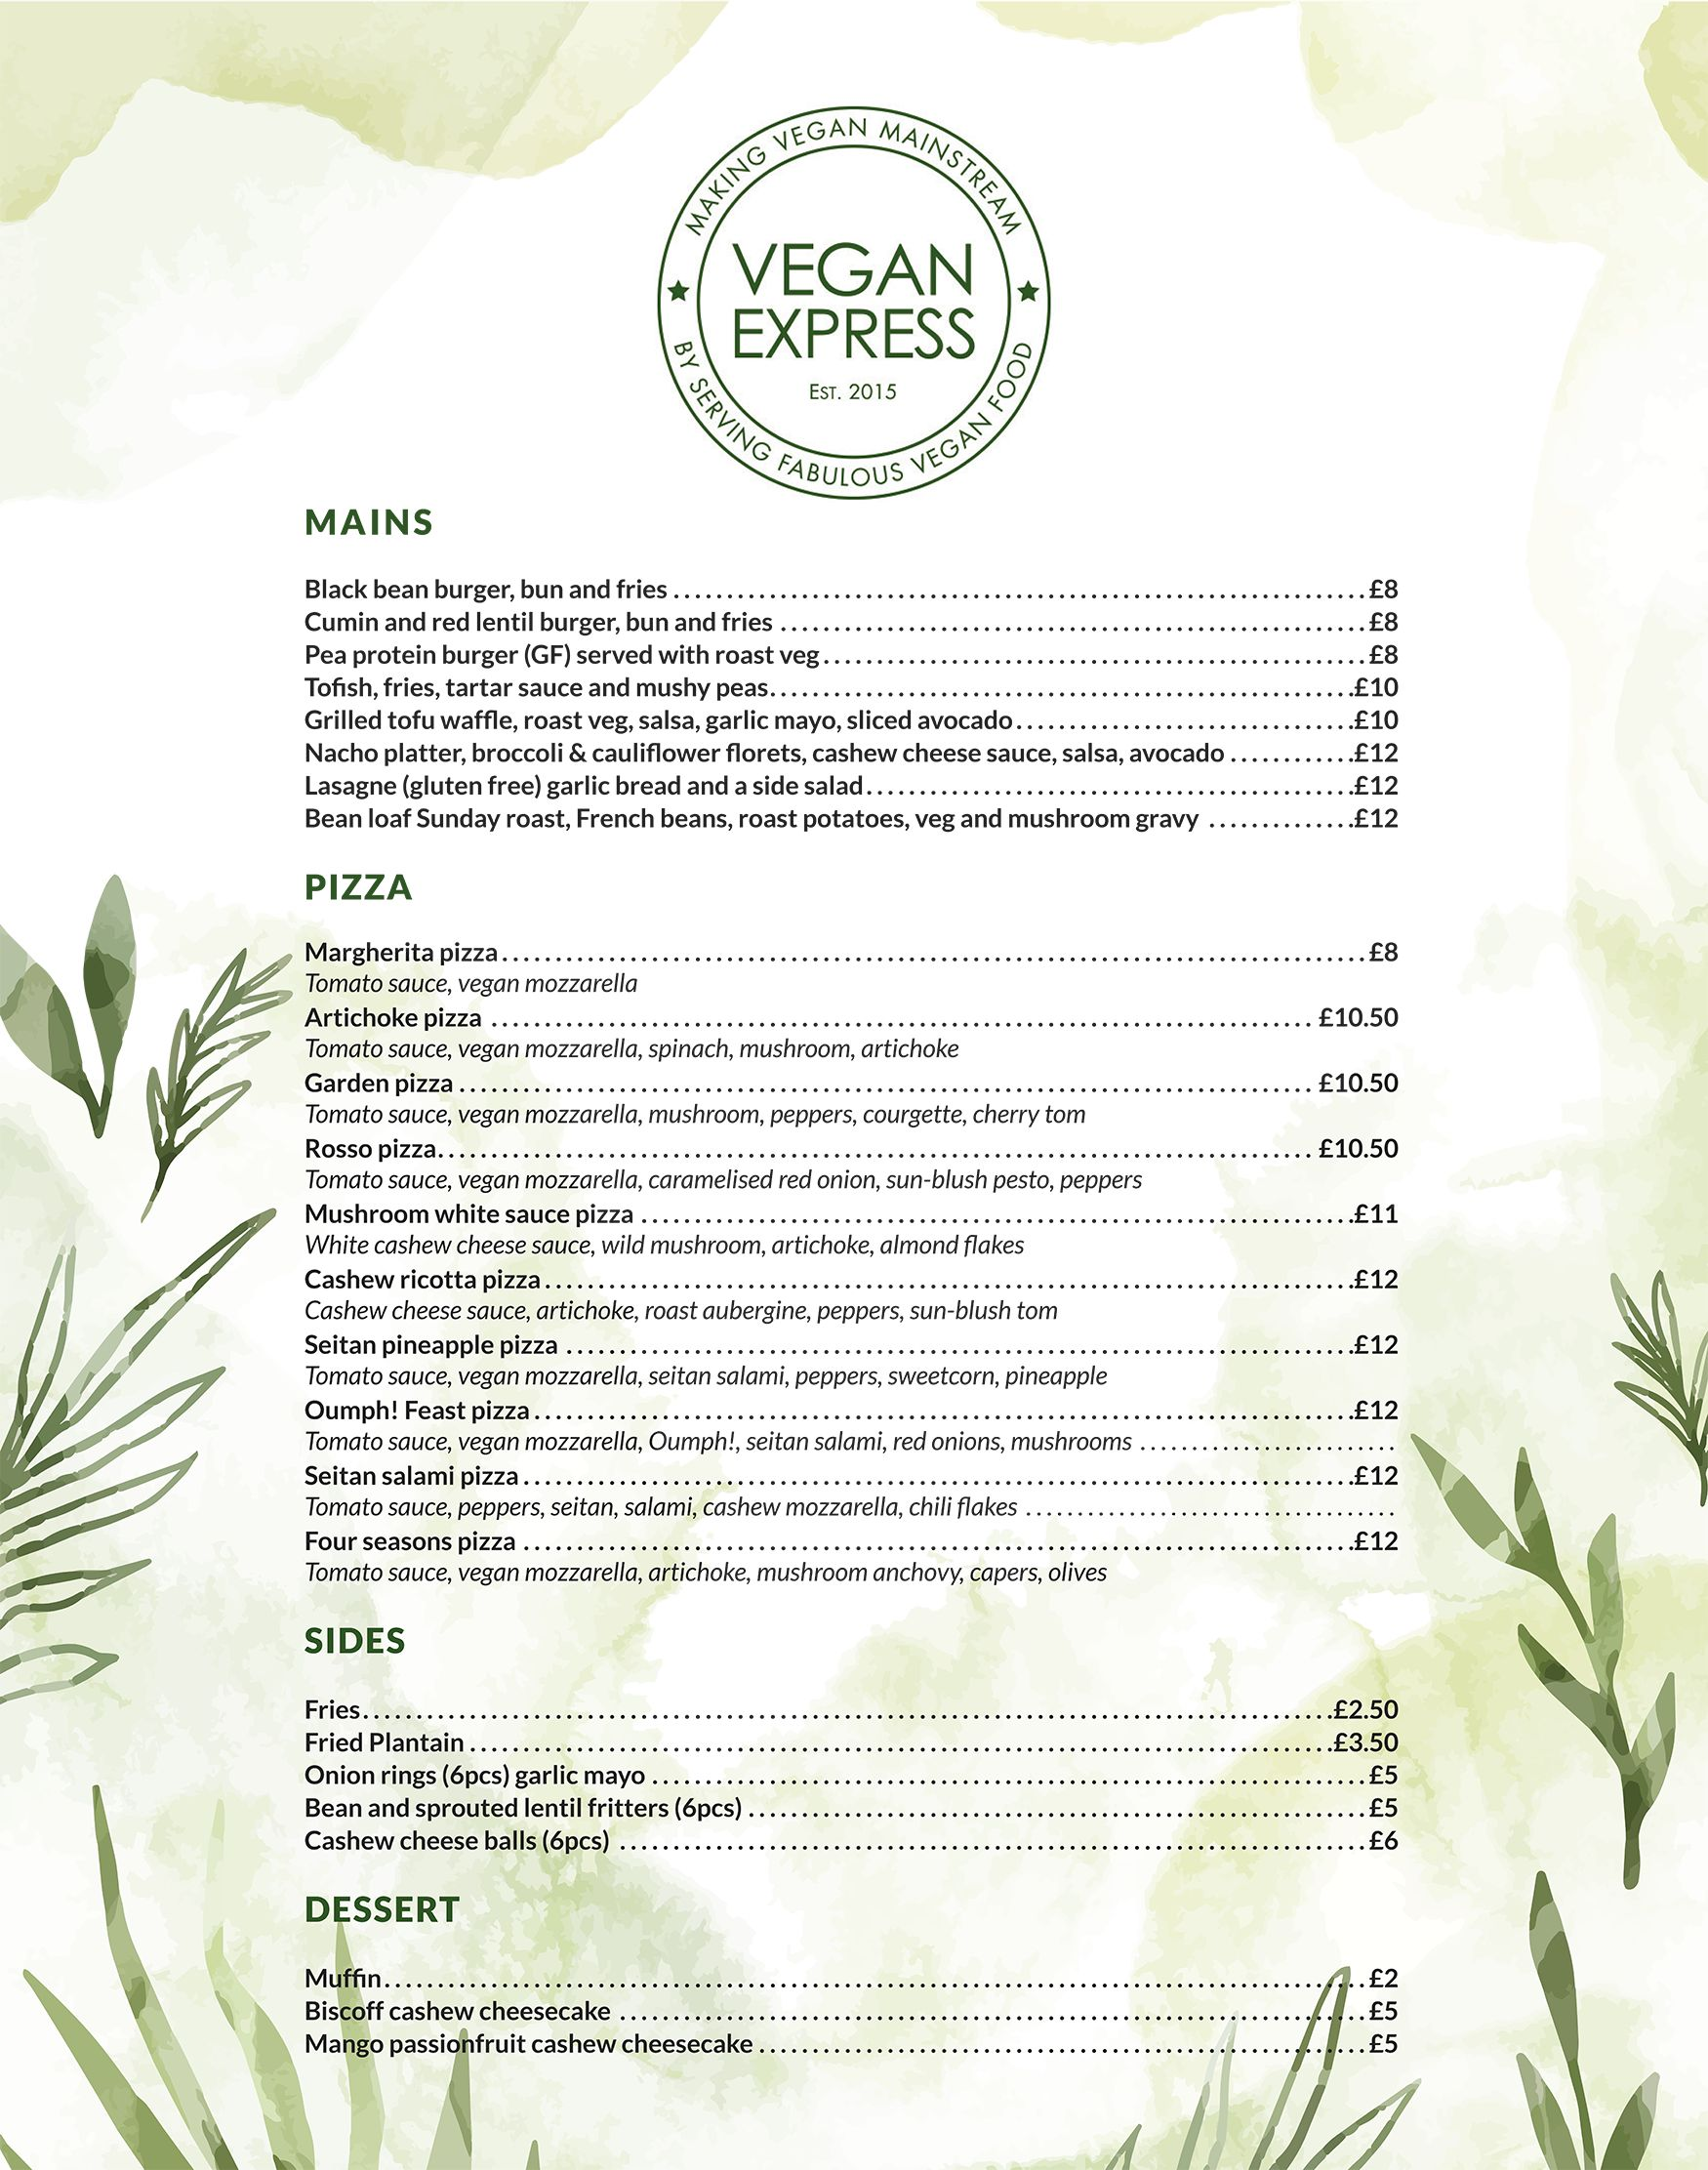 Vegan Express Gourmet menu